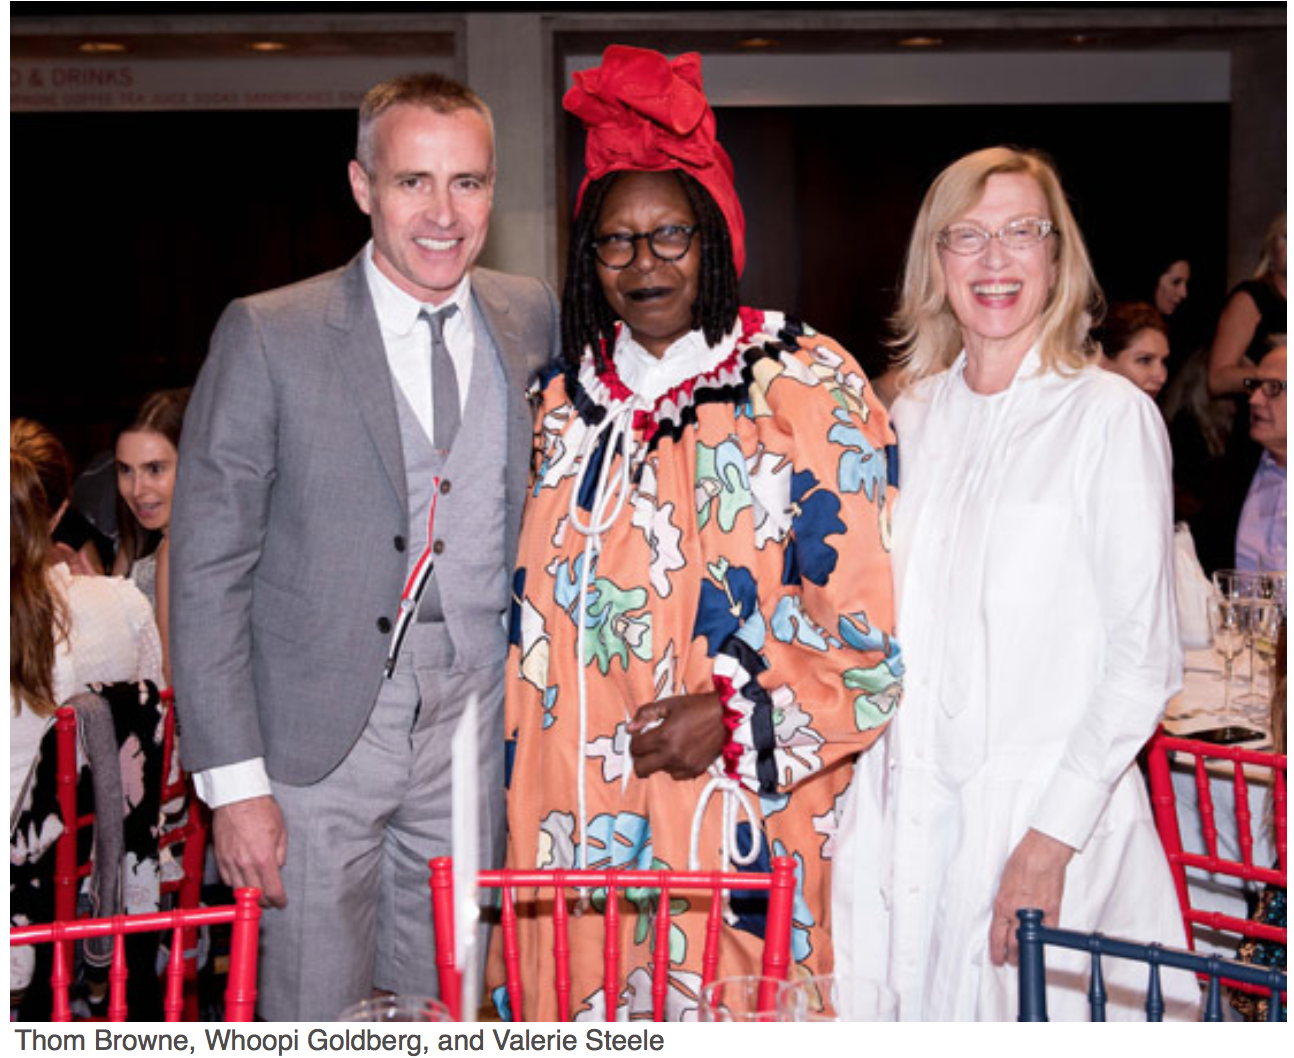 New York Fashion Week The kick-off to this week-long revelry of style and commerce is The Couture Council Luncheon and Award for the Artistry of Fashion.  Thom Browne, Whoopi goldberg, Valere Steele